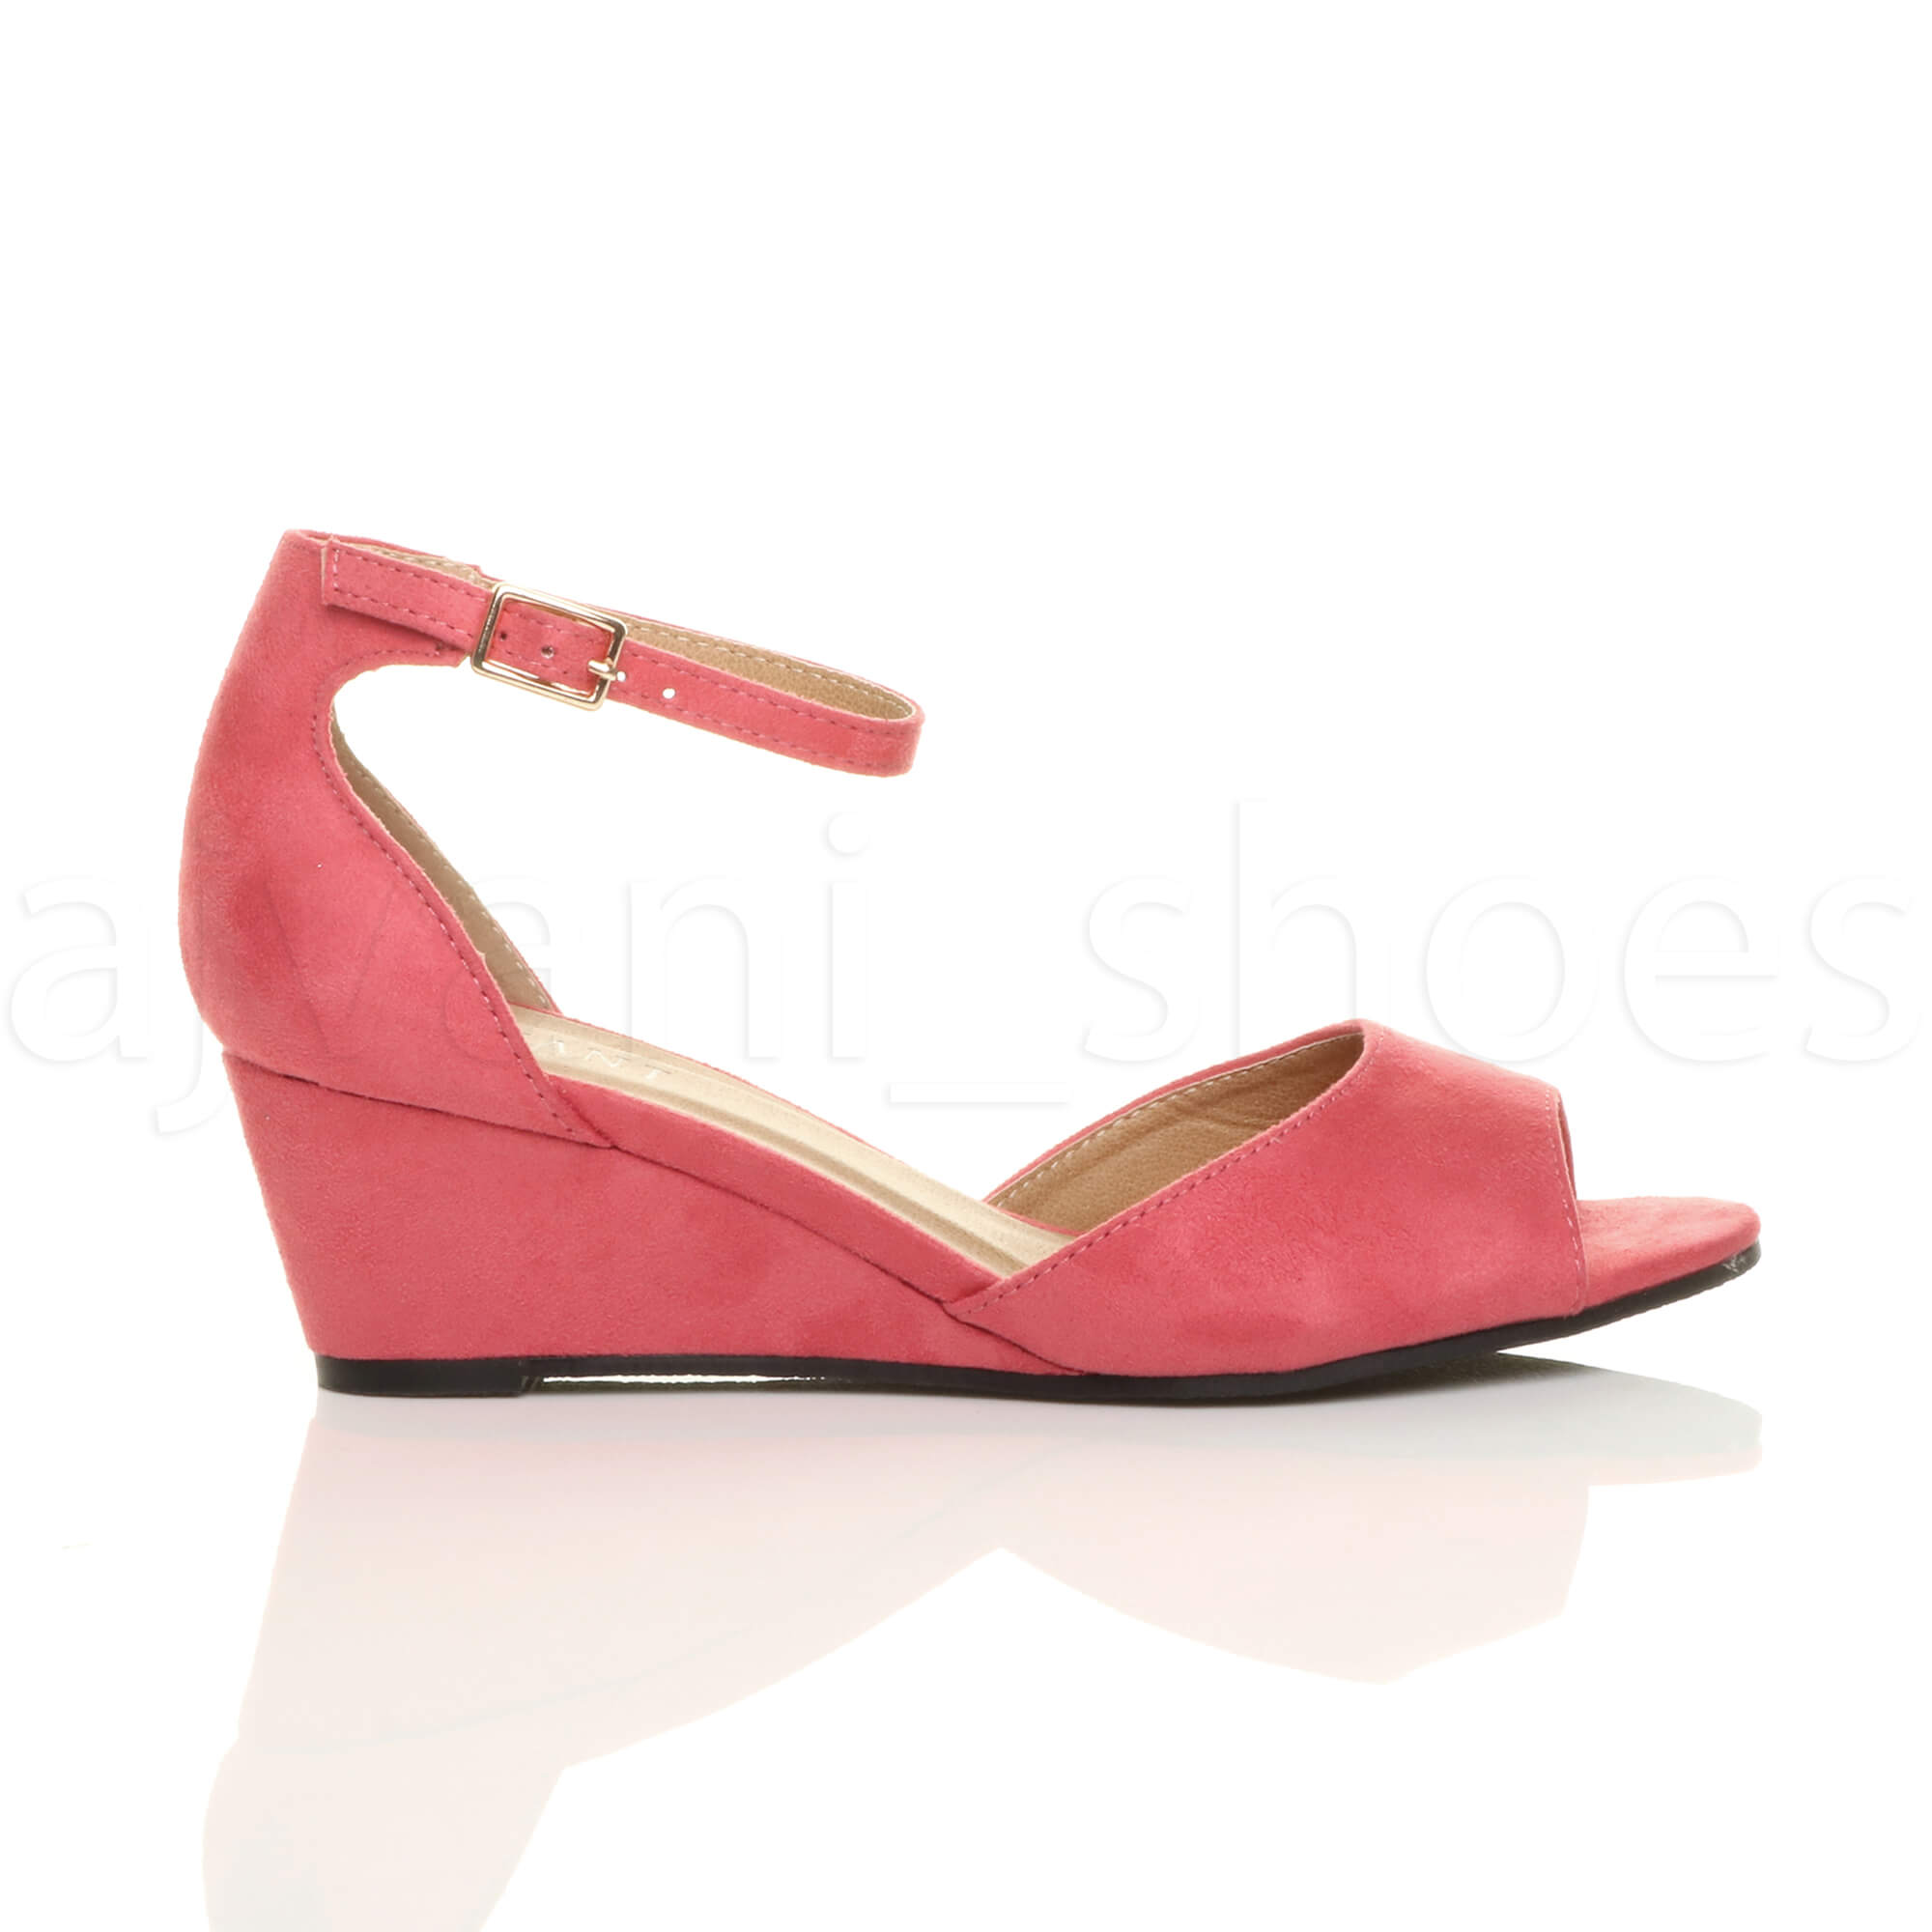 WOMENS-LADIES-LOW-MID-WEDGE-HEEL-ANKLE-STRAP-SMART-CASUAL-EVENING-SANDALS-SIZE thumbnail 35